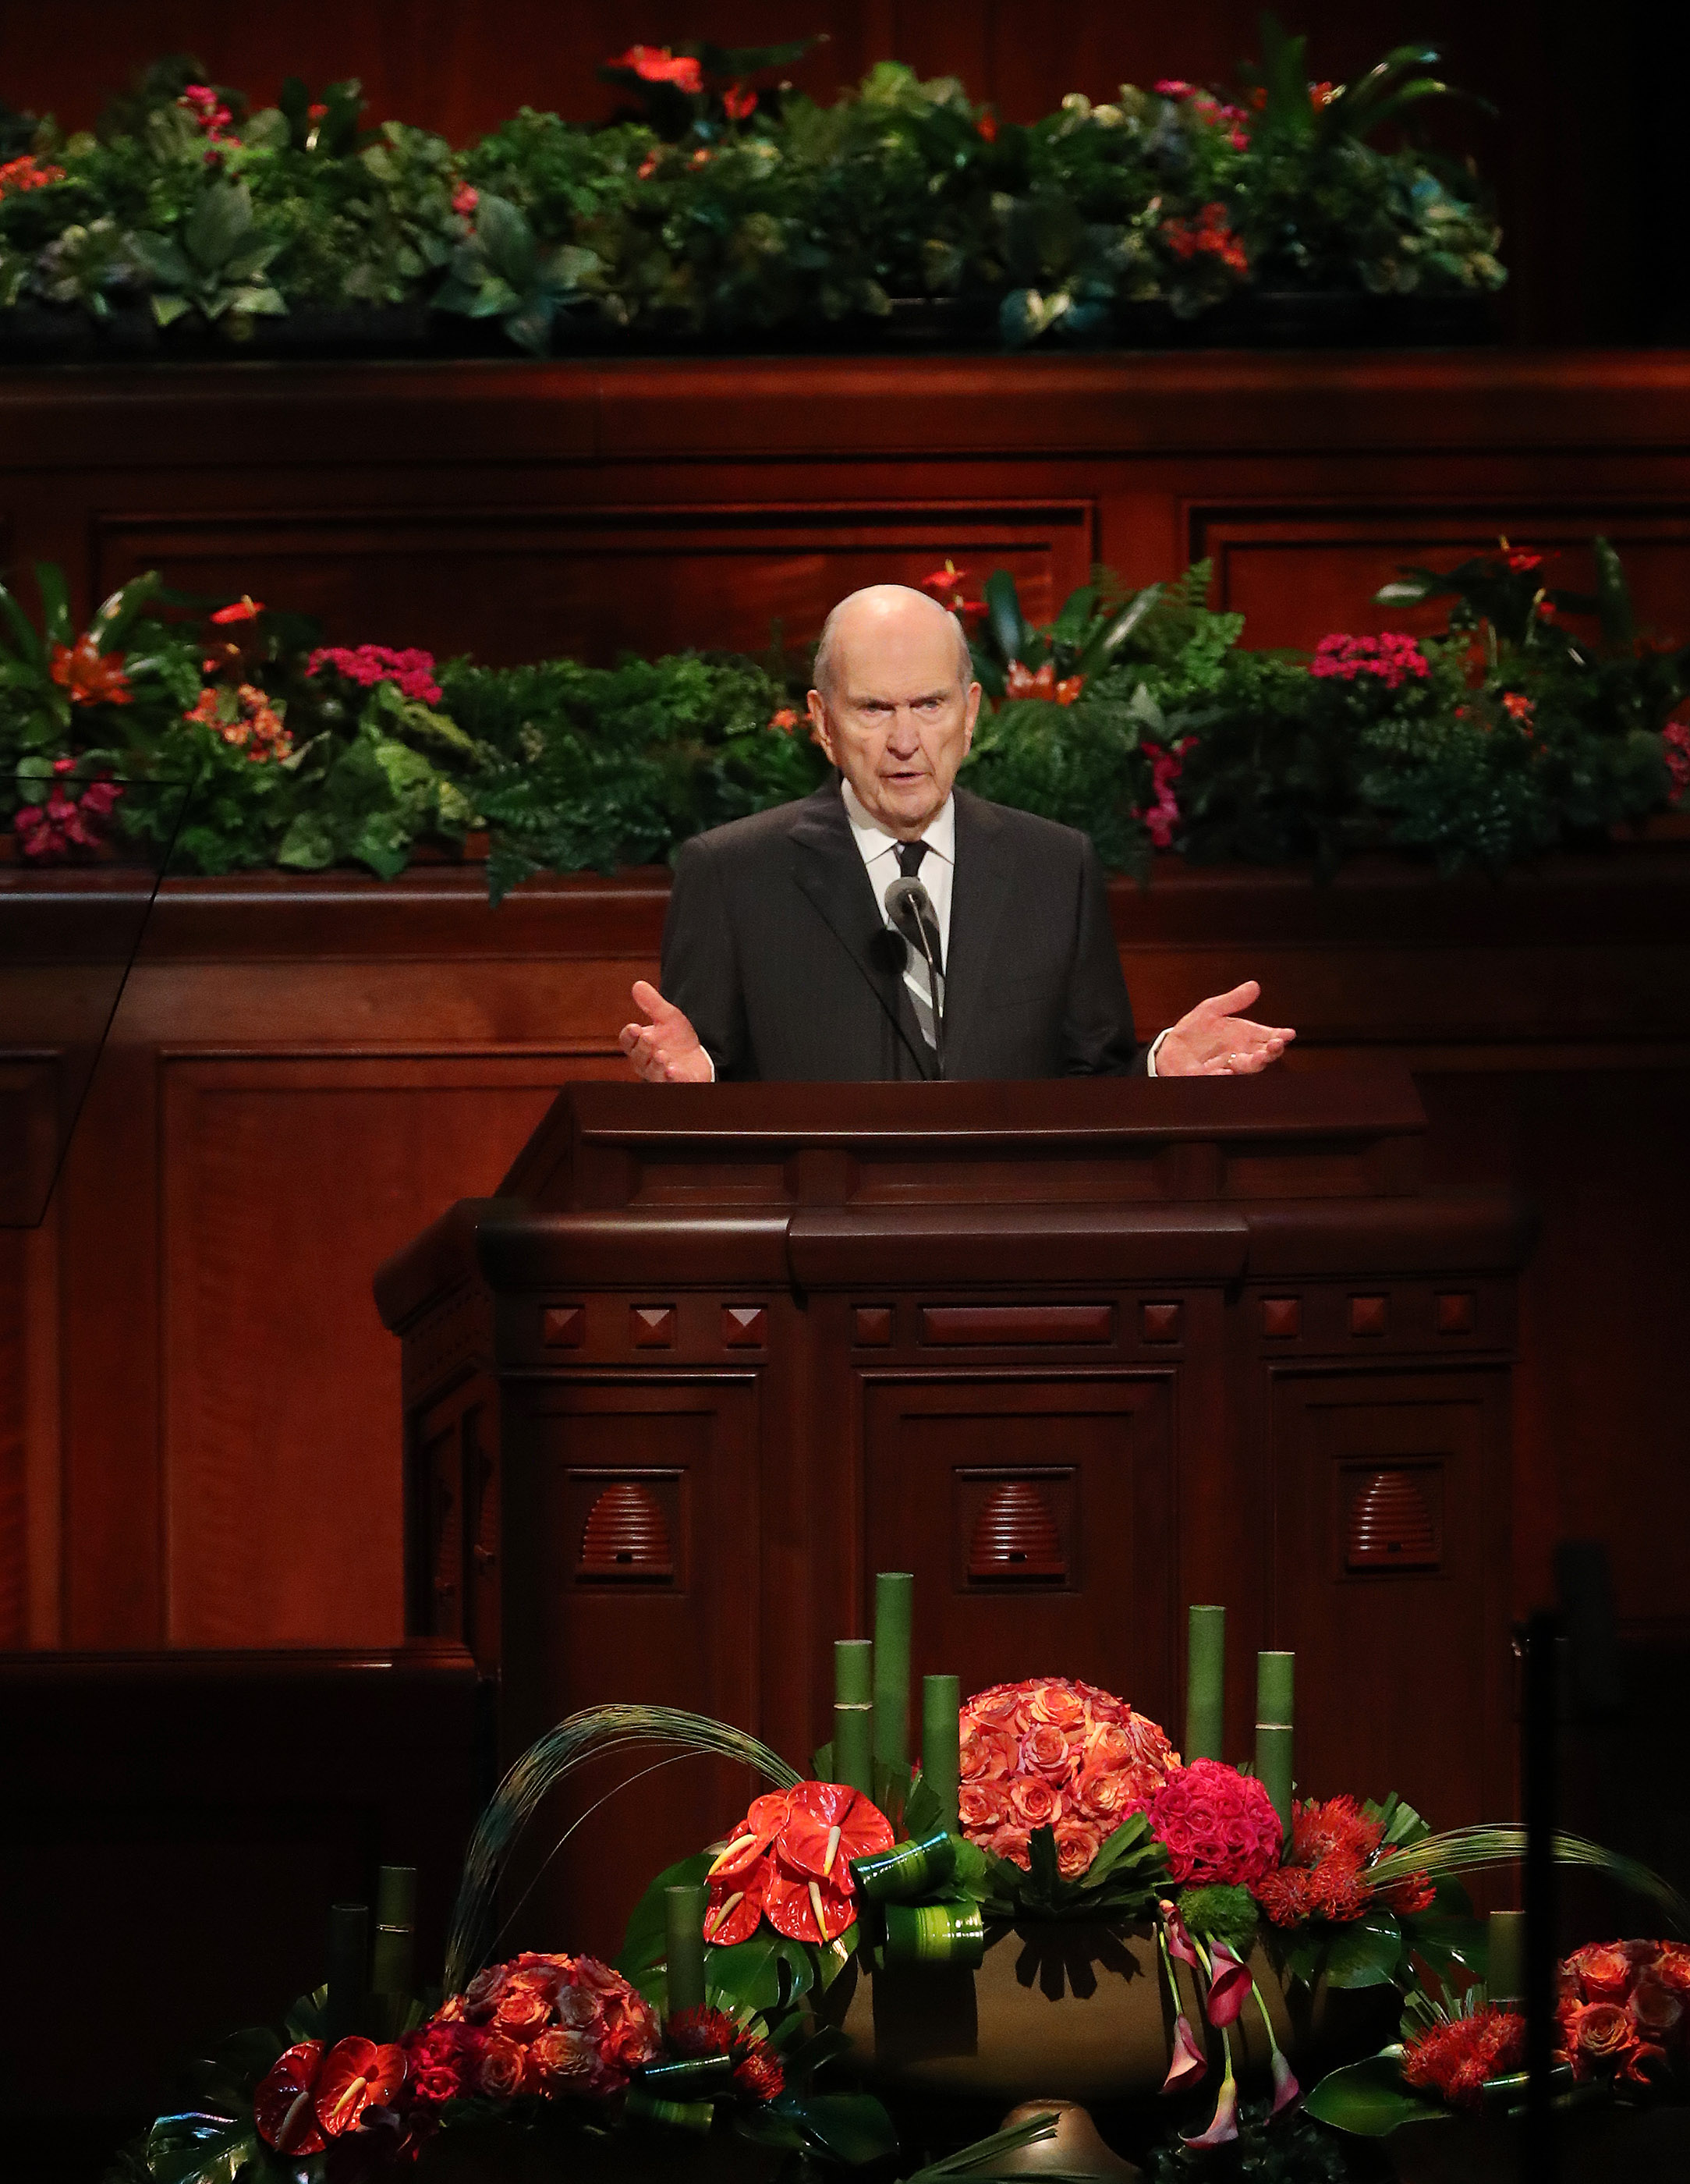 President Russell M. Nelson of The Church of Jesus Christ of Latter-day Saints speaks about changes during the 188th Semiannual General Conference of The Church of Jesus Christ of Latter-day Saints in the Conference Center in Salt Lake City on Saturday, Oct. 6, 2018.